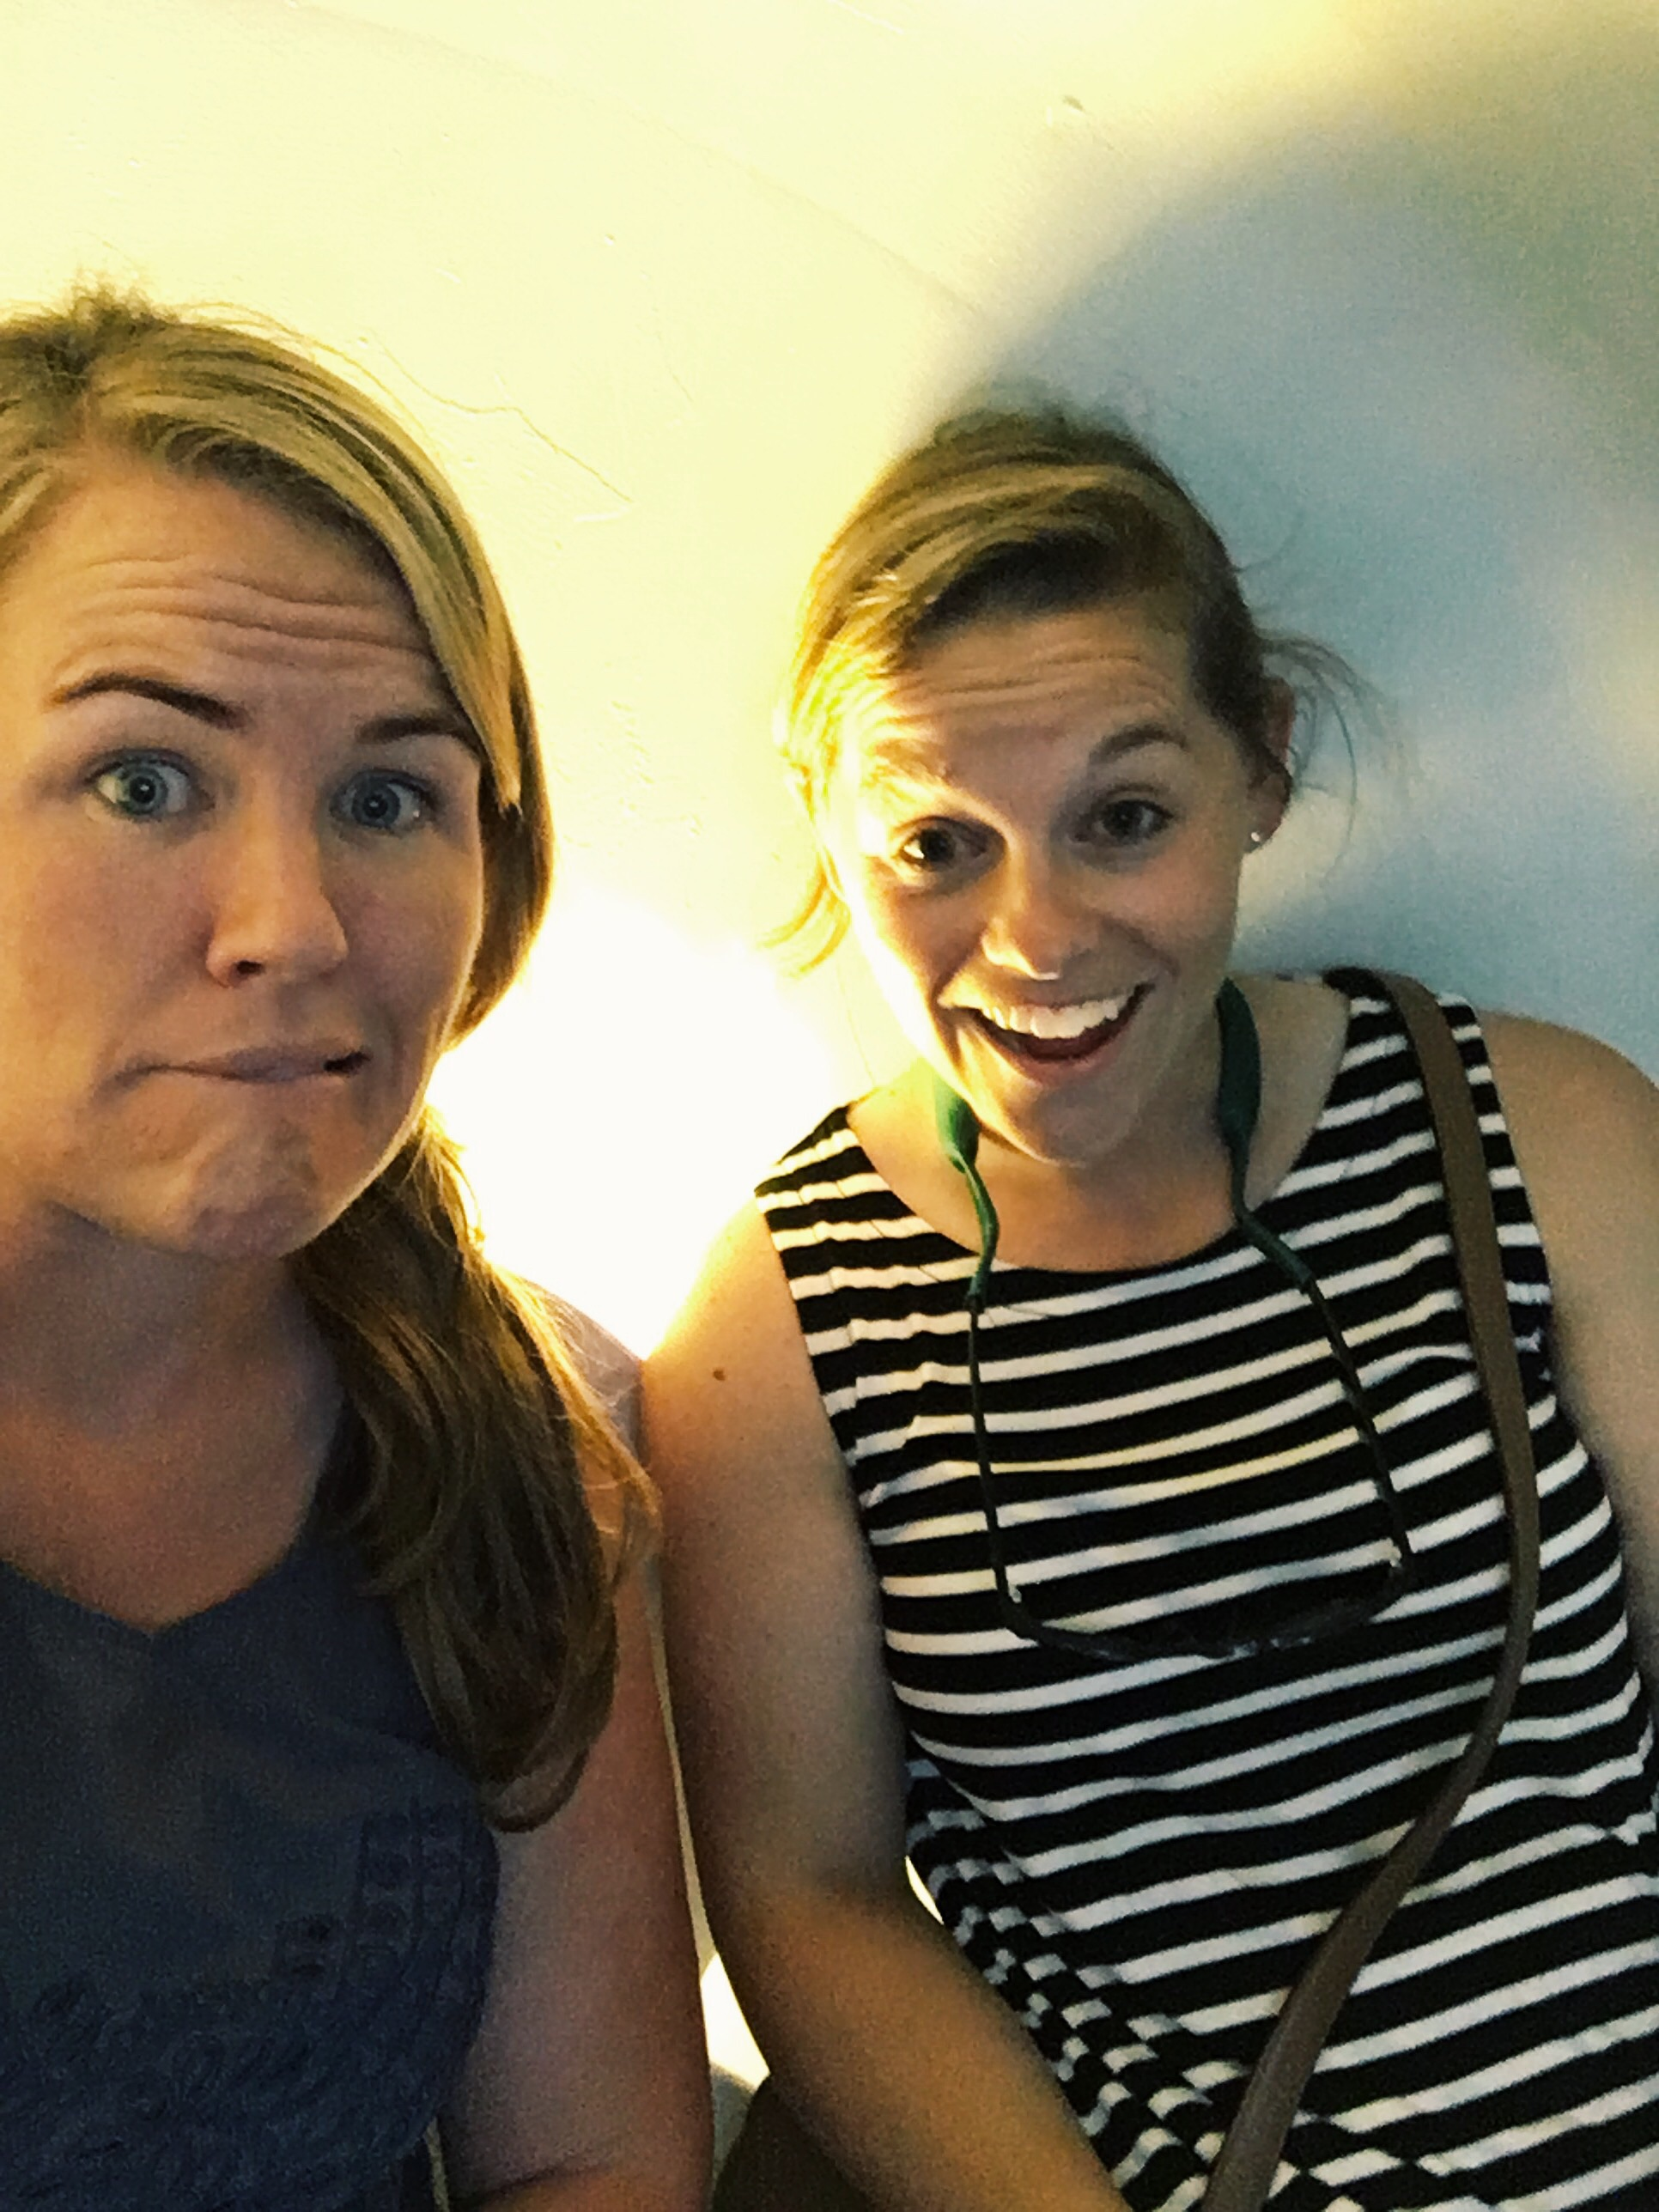 Pod life. Not one for selfies, but it seemed appropriate to snap one in our elevator pod.